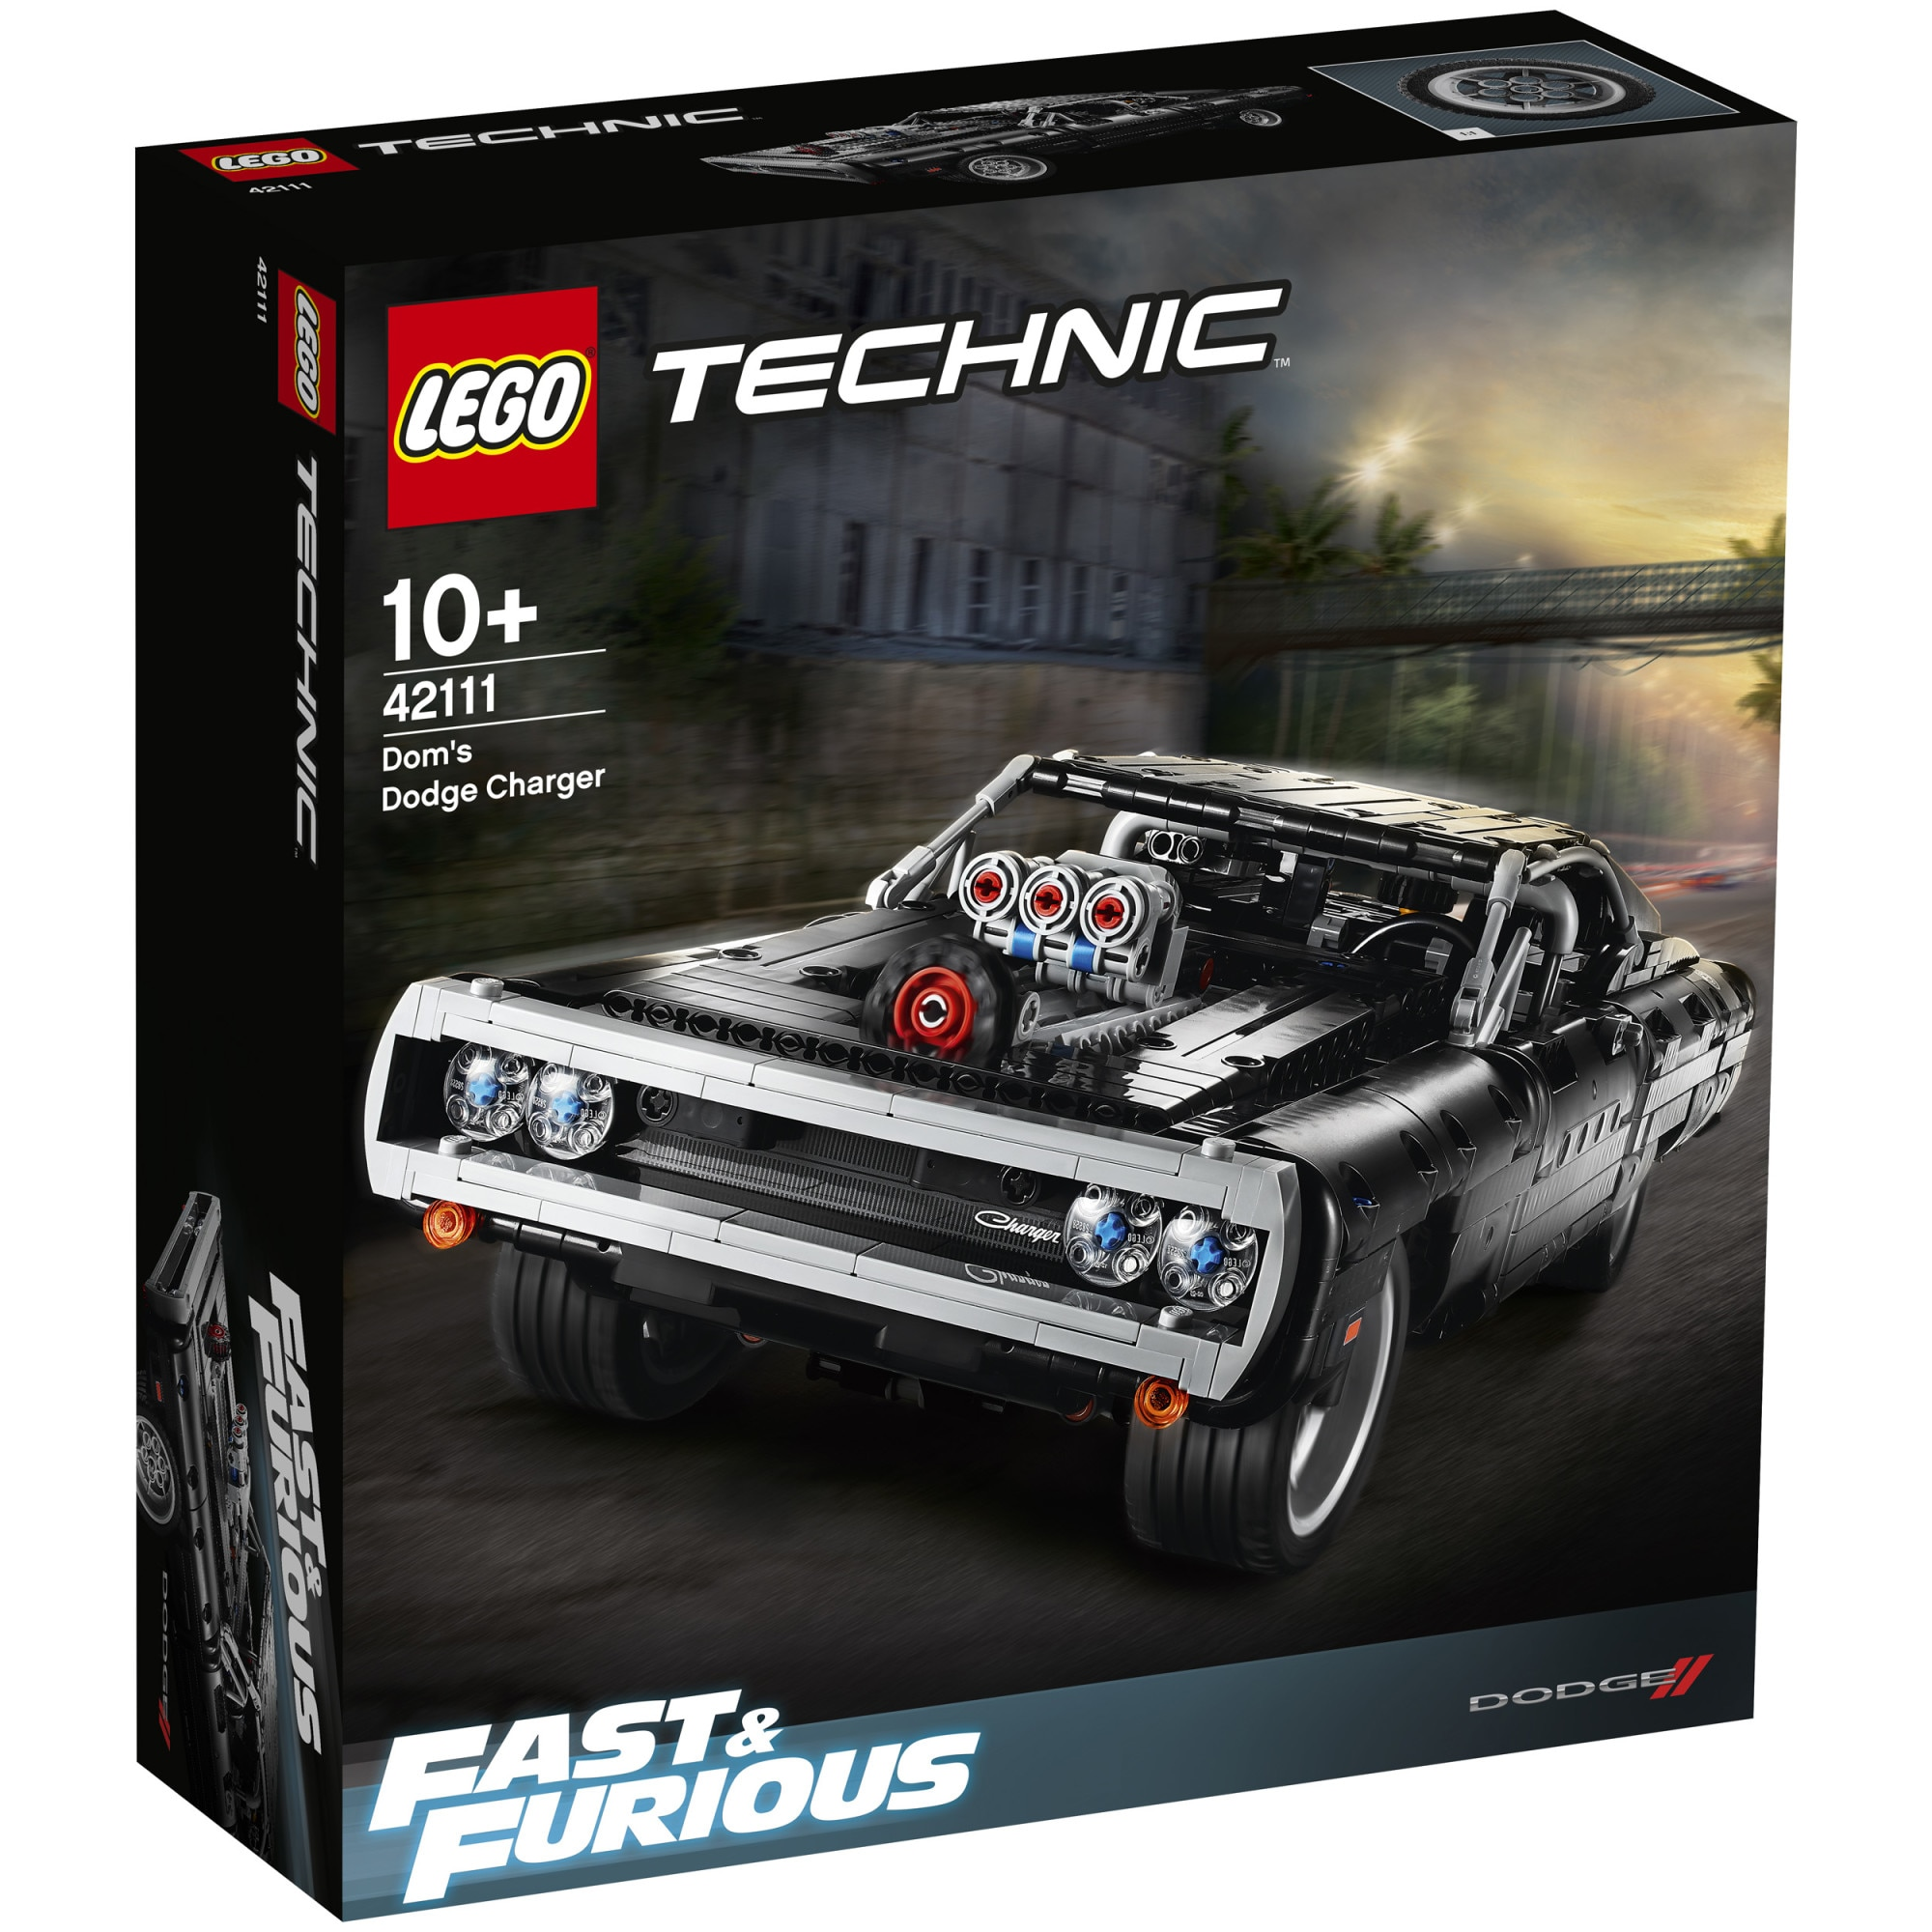 Fotografie LEGO Technic - Dom's Dodge Charger 42111